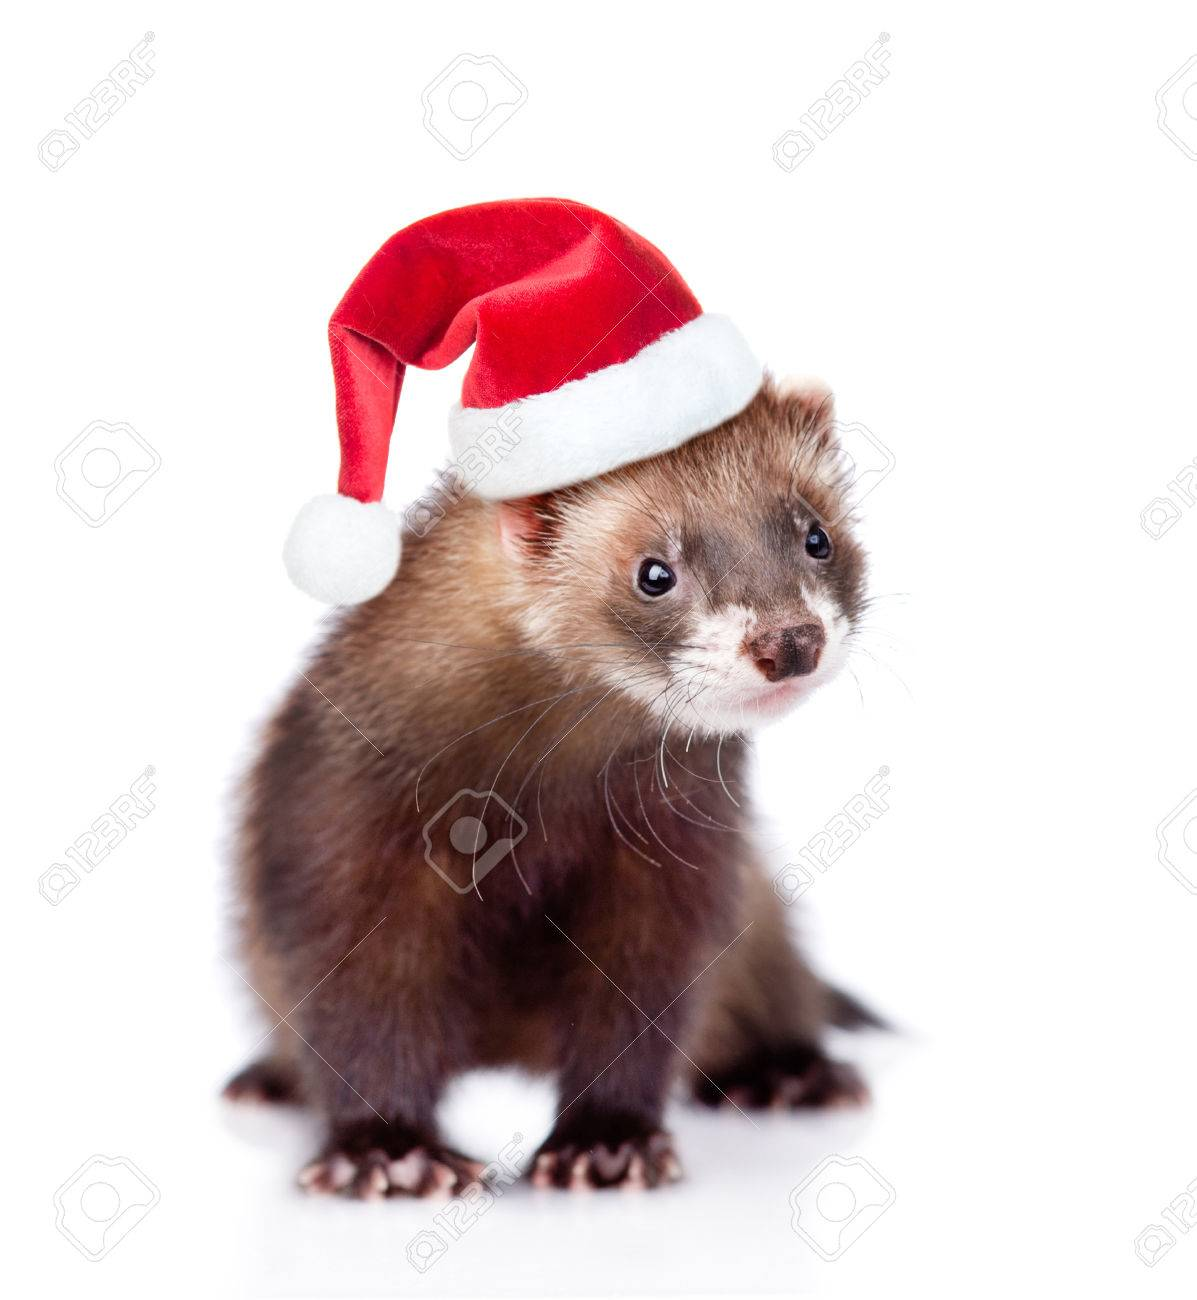 Christmas Ferret.Ferret In Red Christmas Hat Looking At Camera Isolated On White